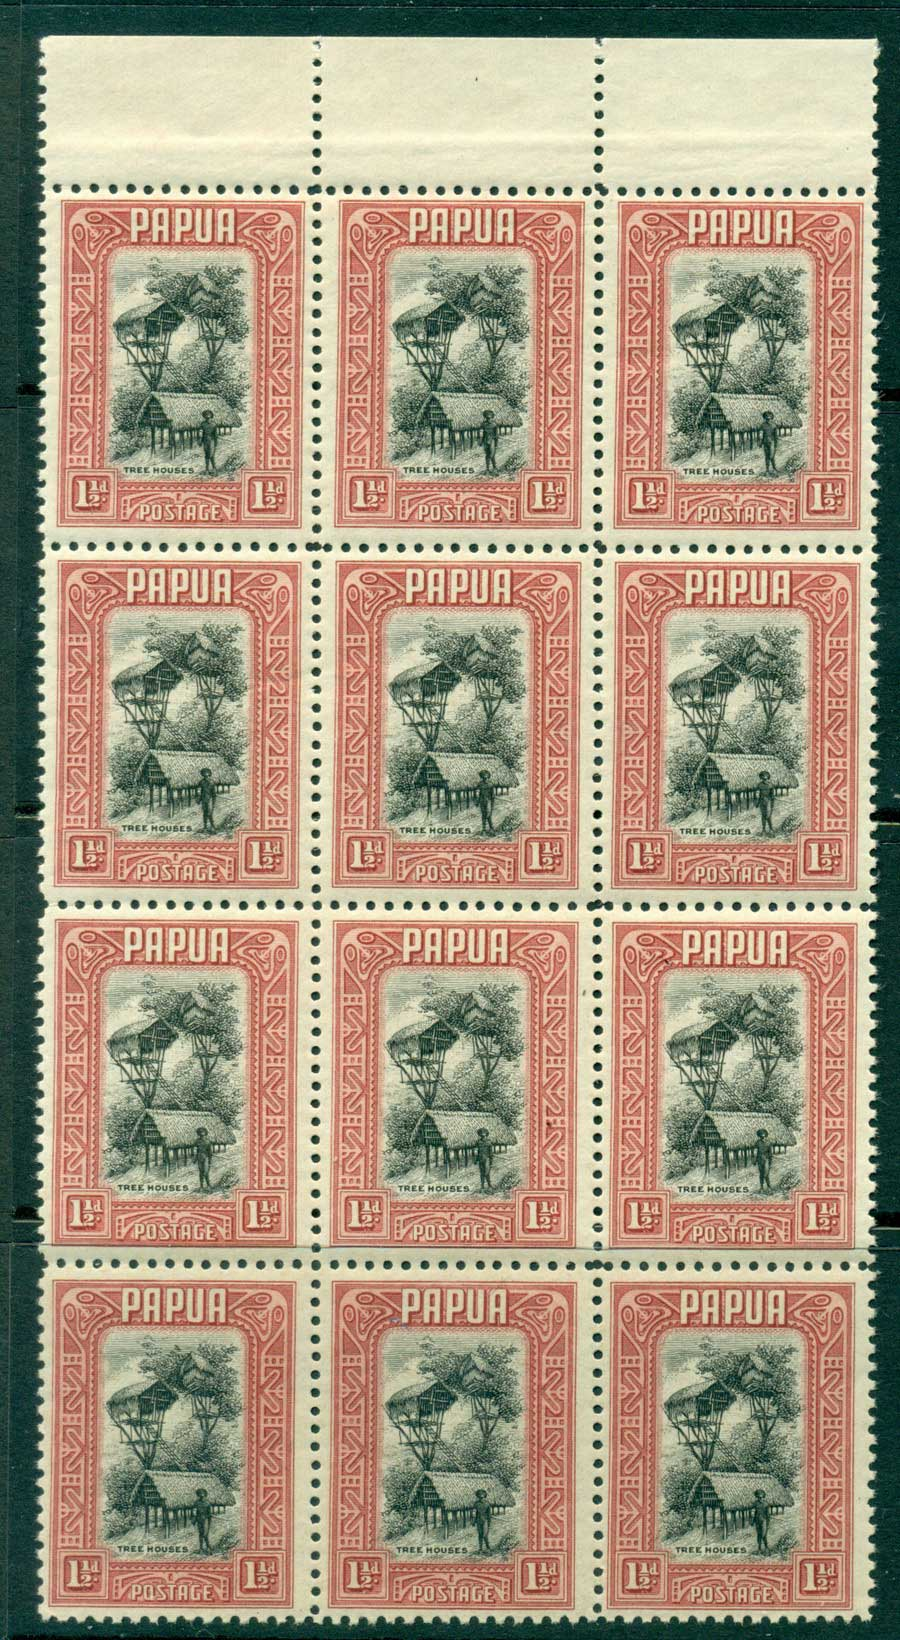 Papua 1932 1 1/2d Tree Houses Top Marginal Block 12 MUH (lot21944)